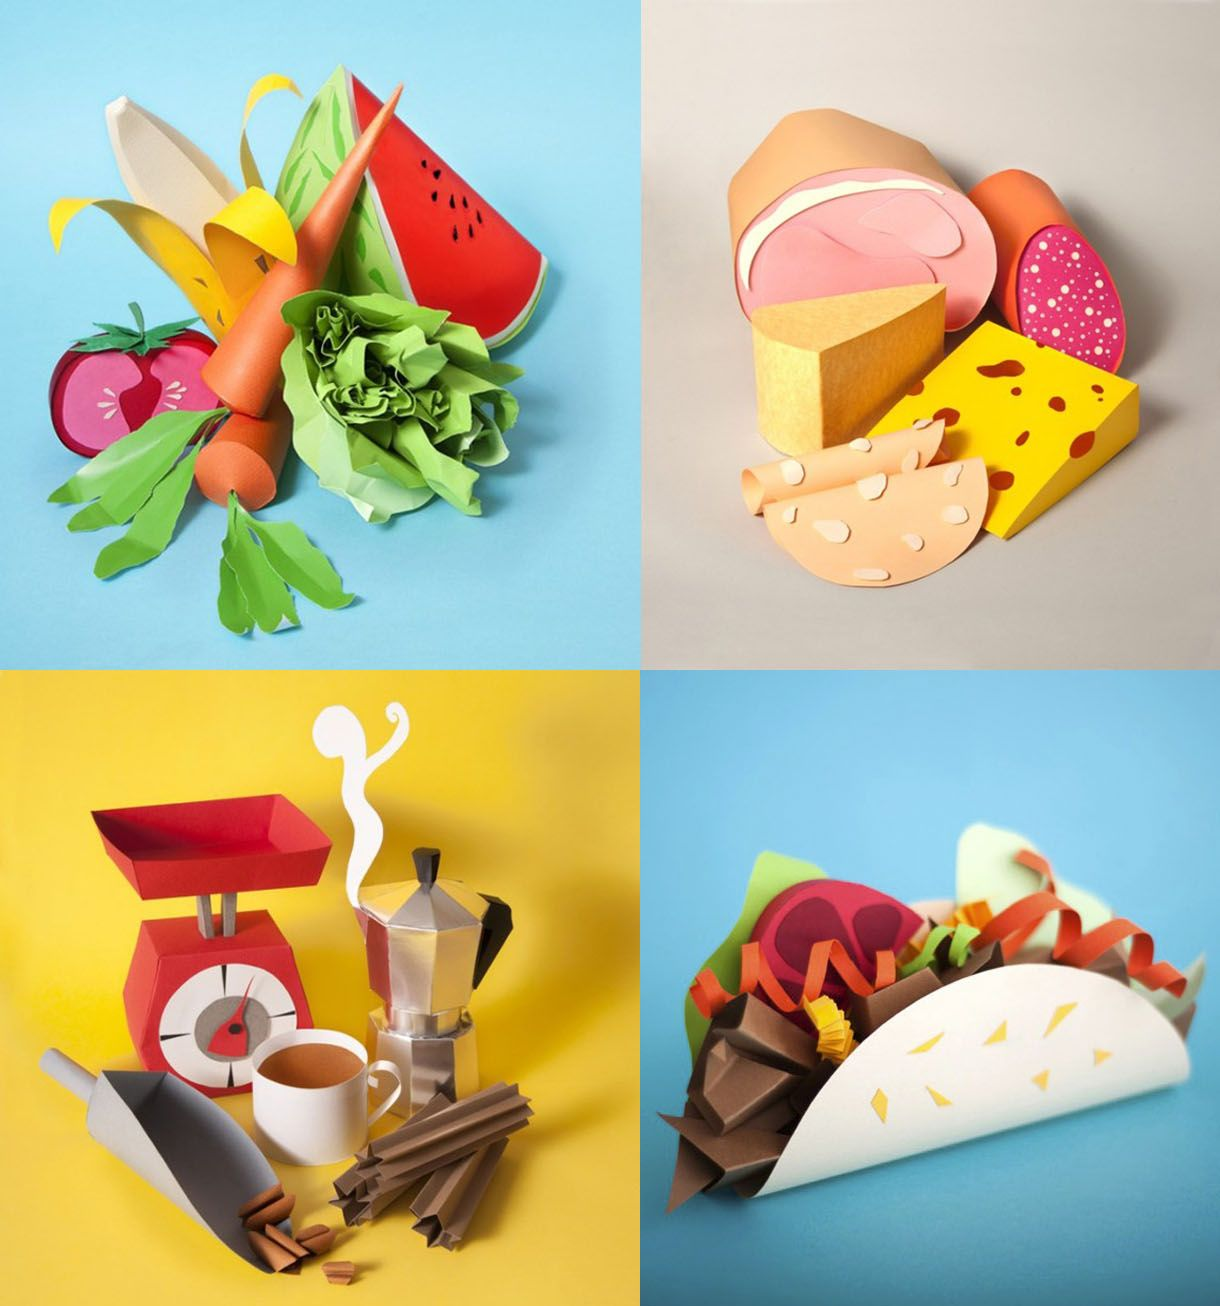 arts career culinary essay Culinary arts school can prepare you to meet your goal of becoming a chef, no matter where you desire to work in the food service industry.